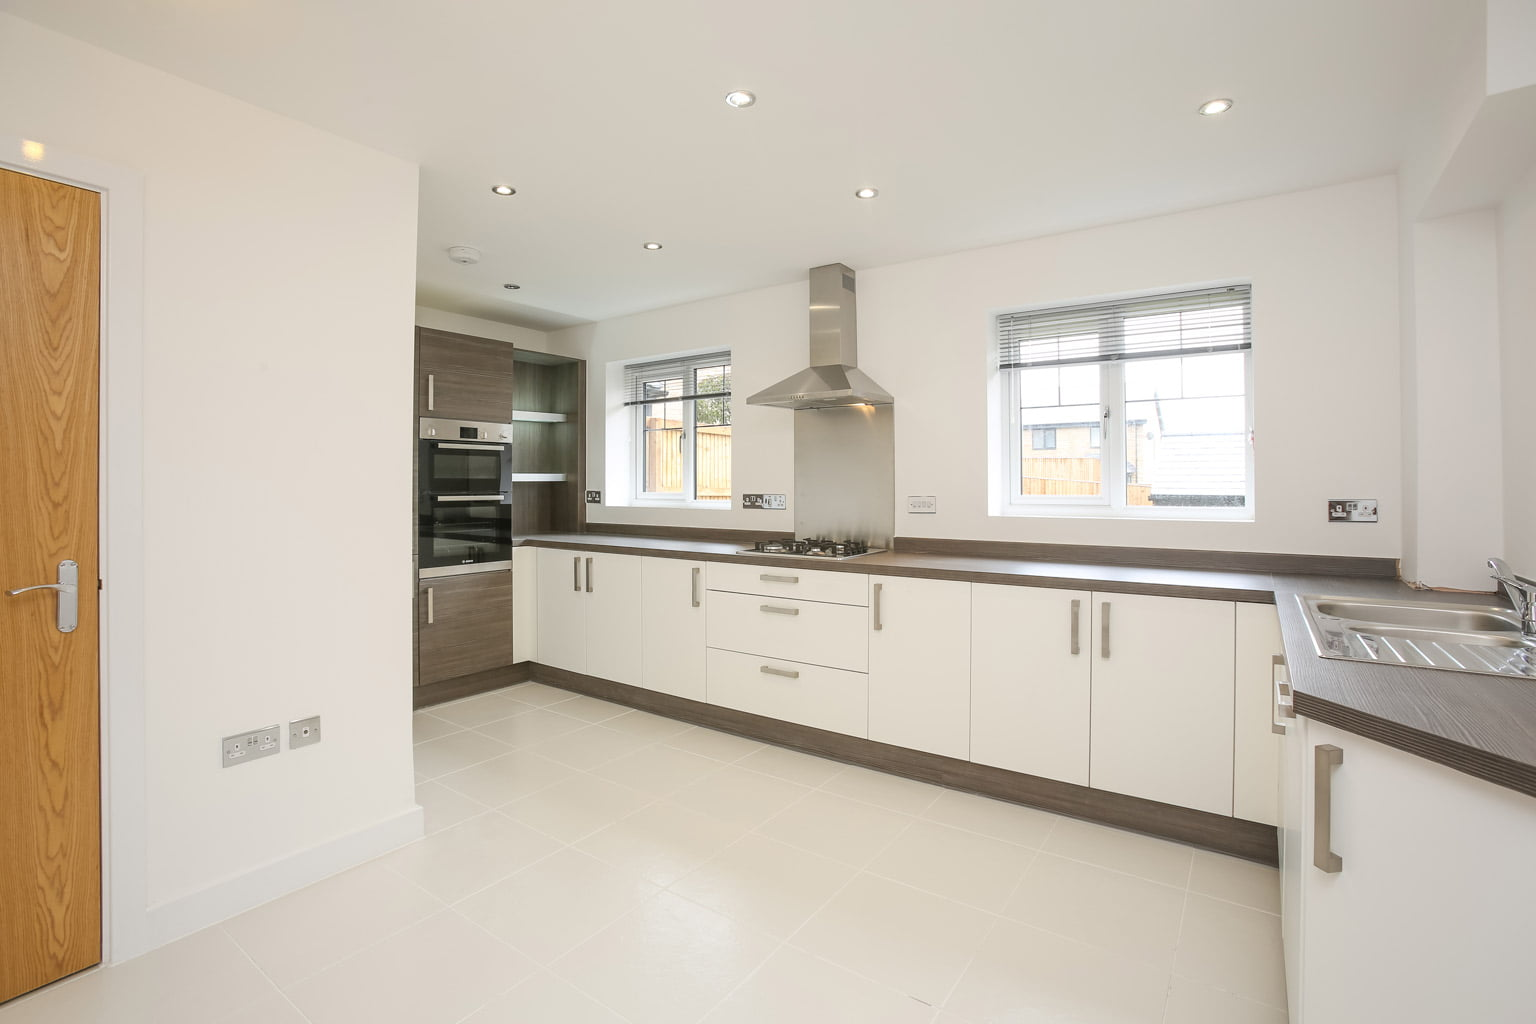 The Budworth kitchen